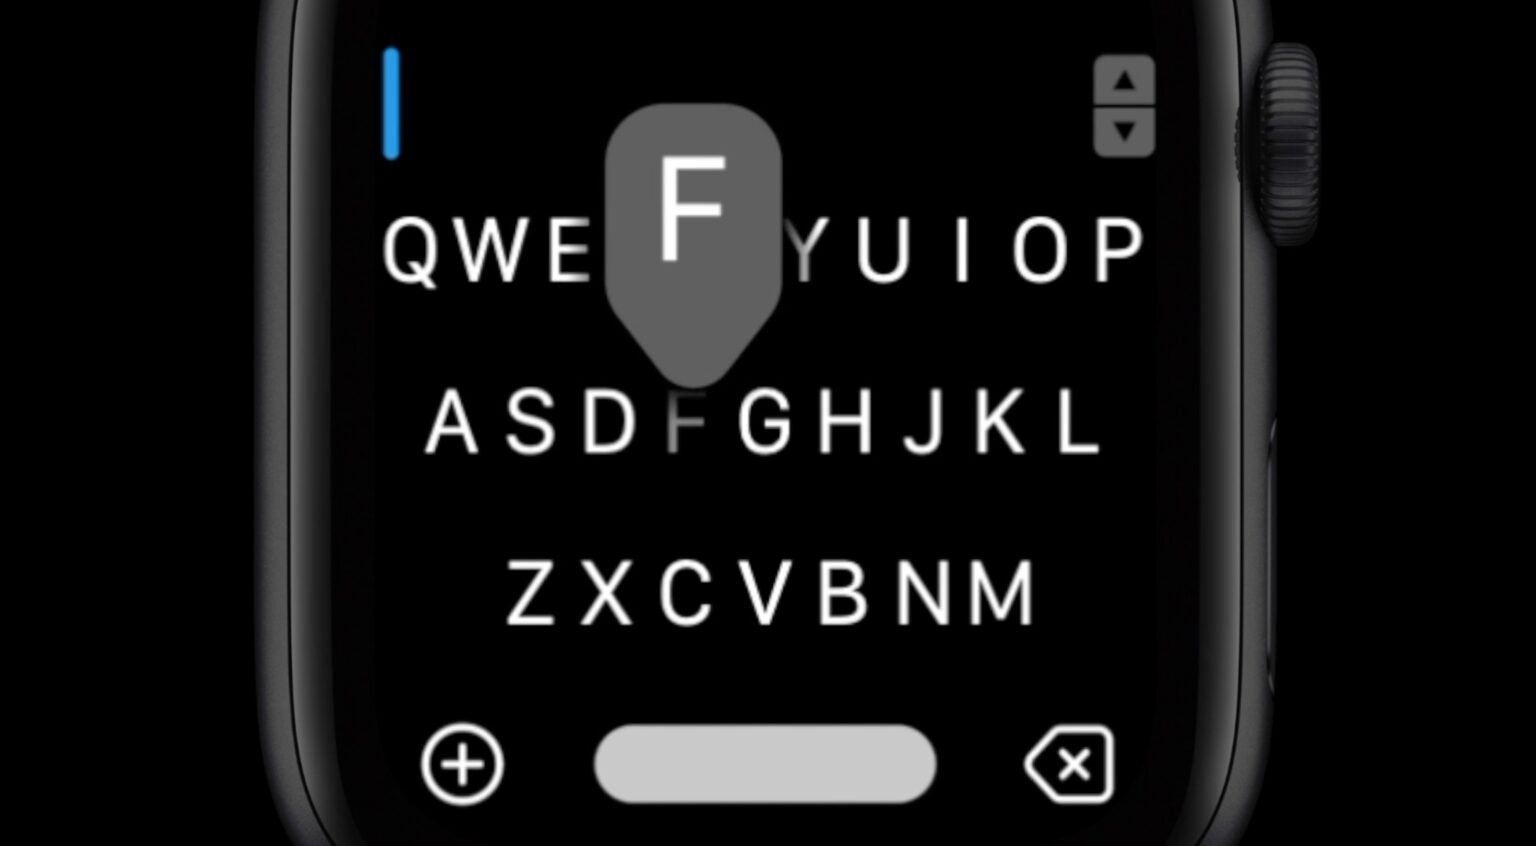 FlickType gives up on iPhone keyboard